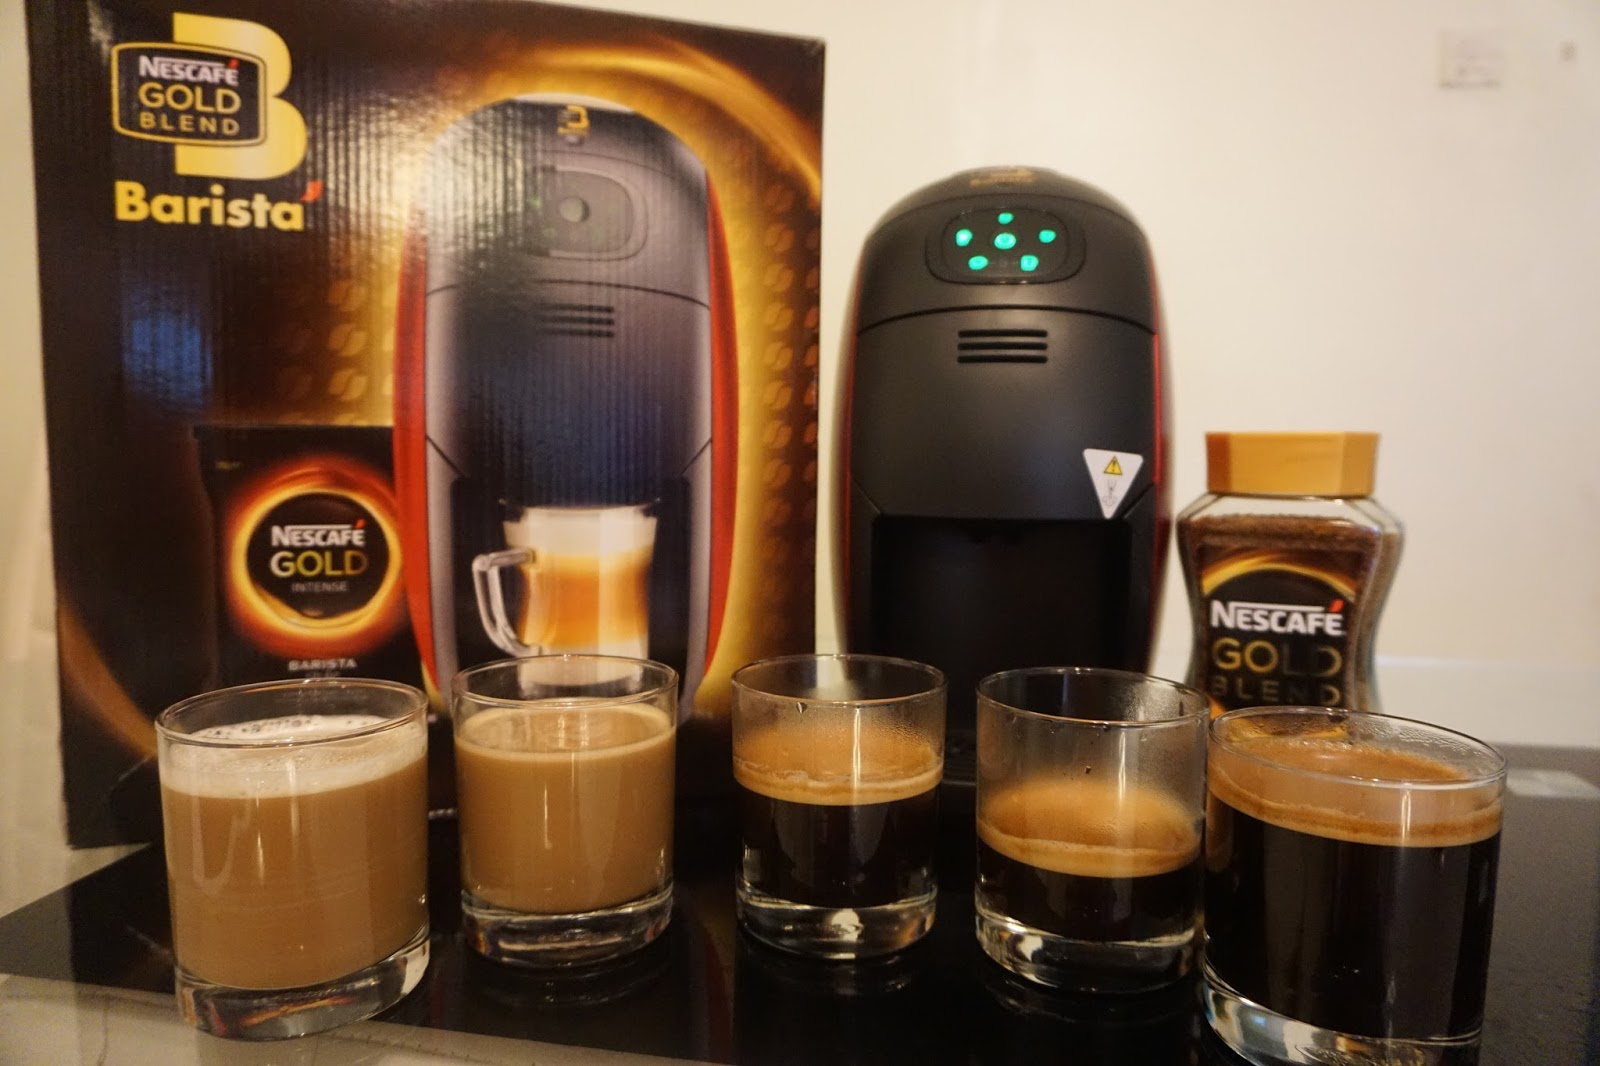 executive summary of nescafe coffee Executive summary nescafe is a well-known brand in vietnam market this is a brand of nestle vietnam company, ltd our presentation's main goal is drawing up a swot analysis for nescafe brand in vietnam market.